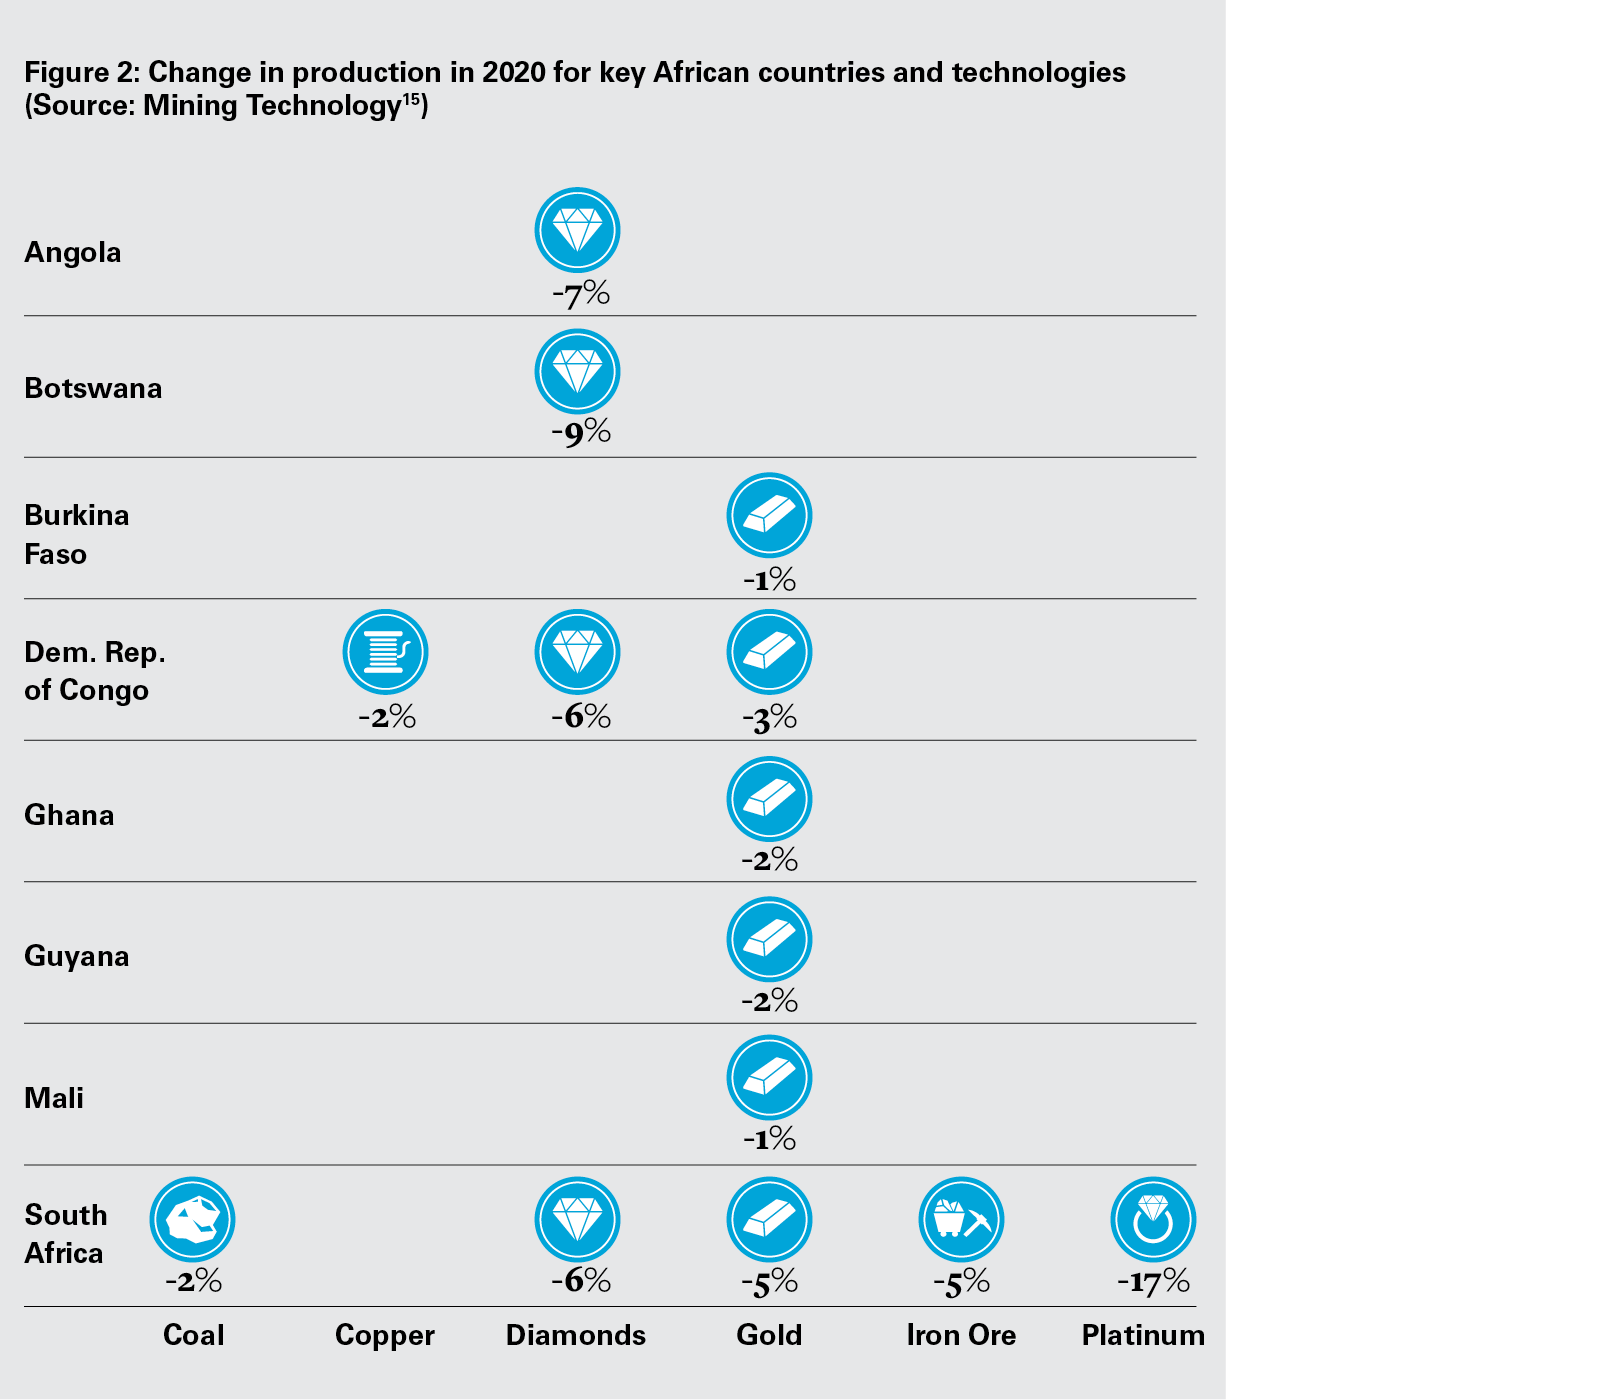 Change in production in 2020 for key African countries and technologies (Source Mining Technology (PNG)